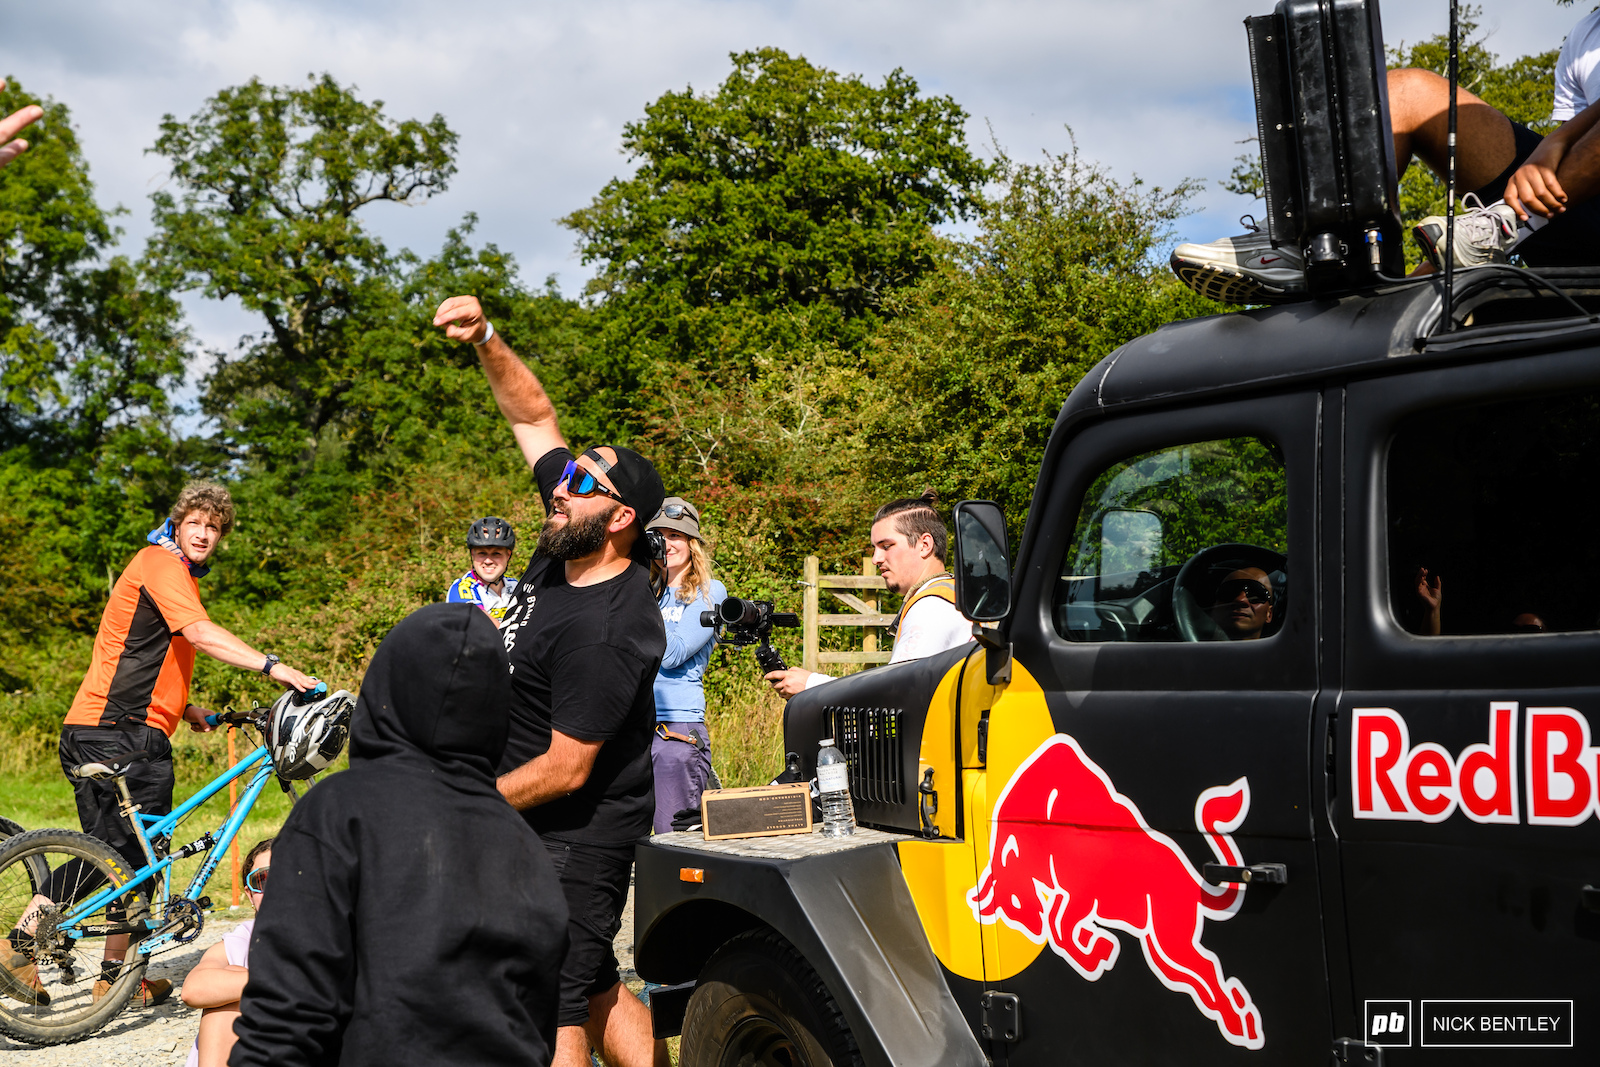 Andy Ward from Viris doing a mid downhill race giveaway leading to the inevitable carnage for some free goodies